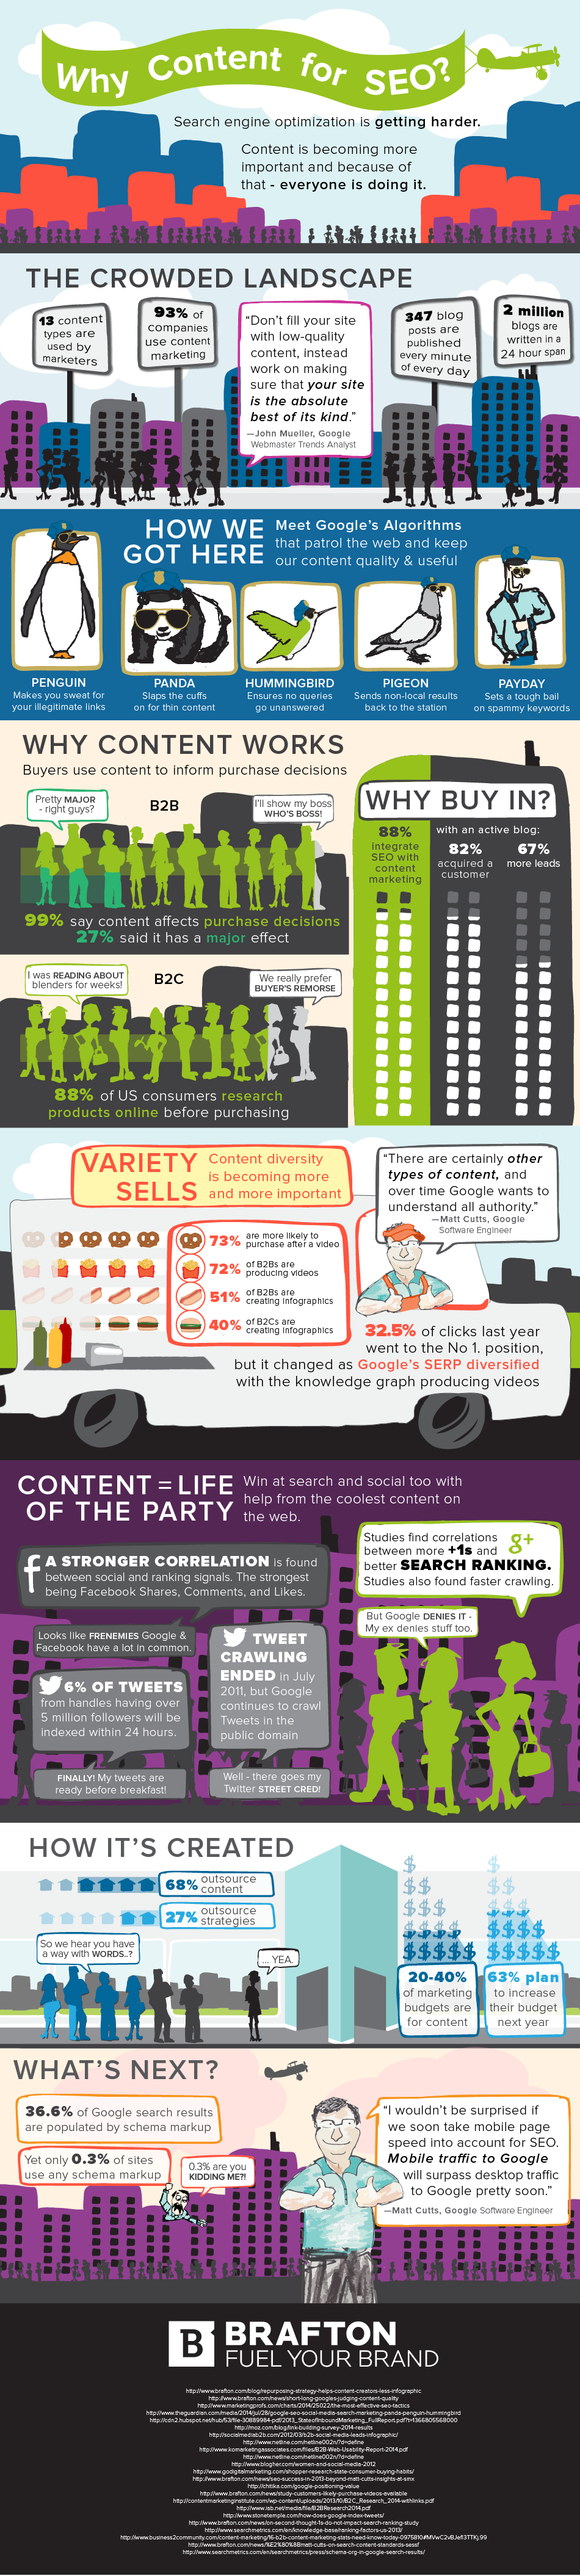 This infographic shows how the practice of creating content for SEO has evolved.